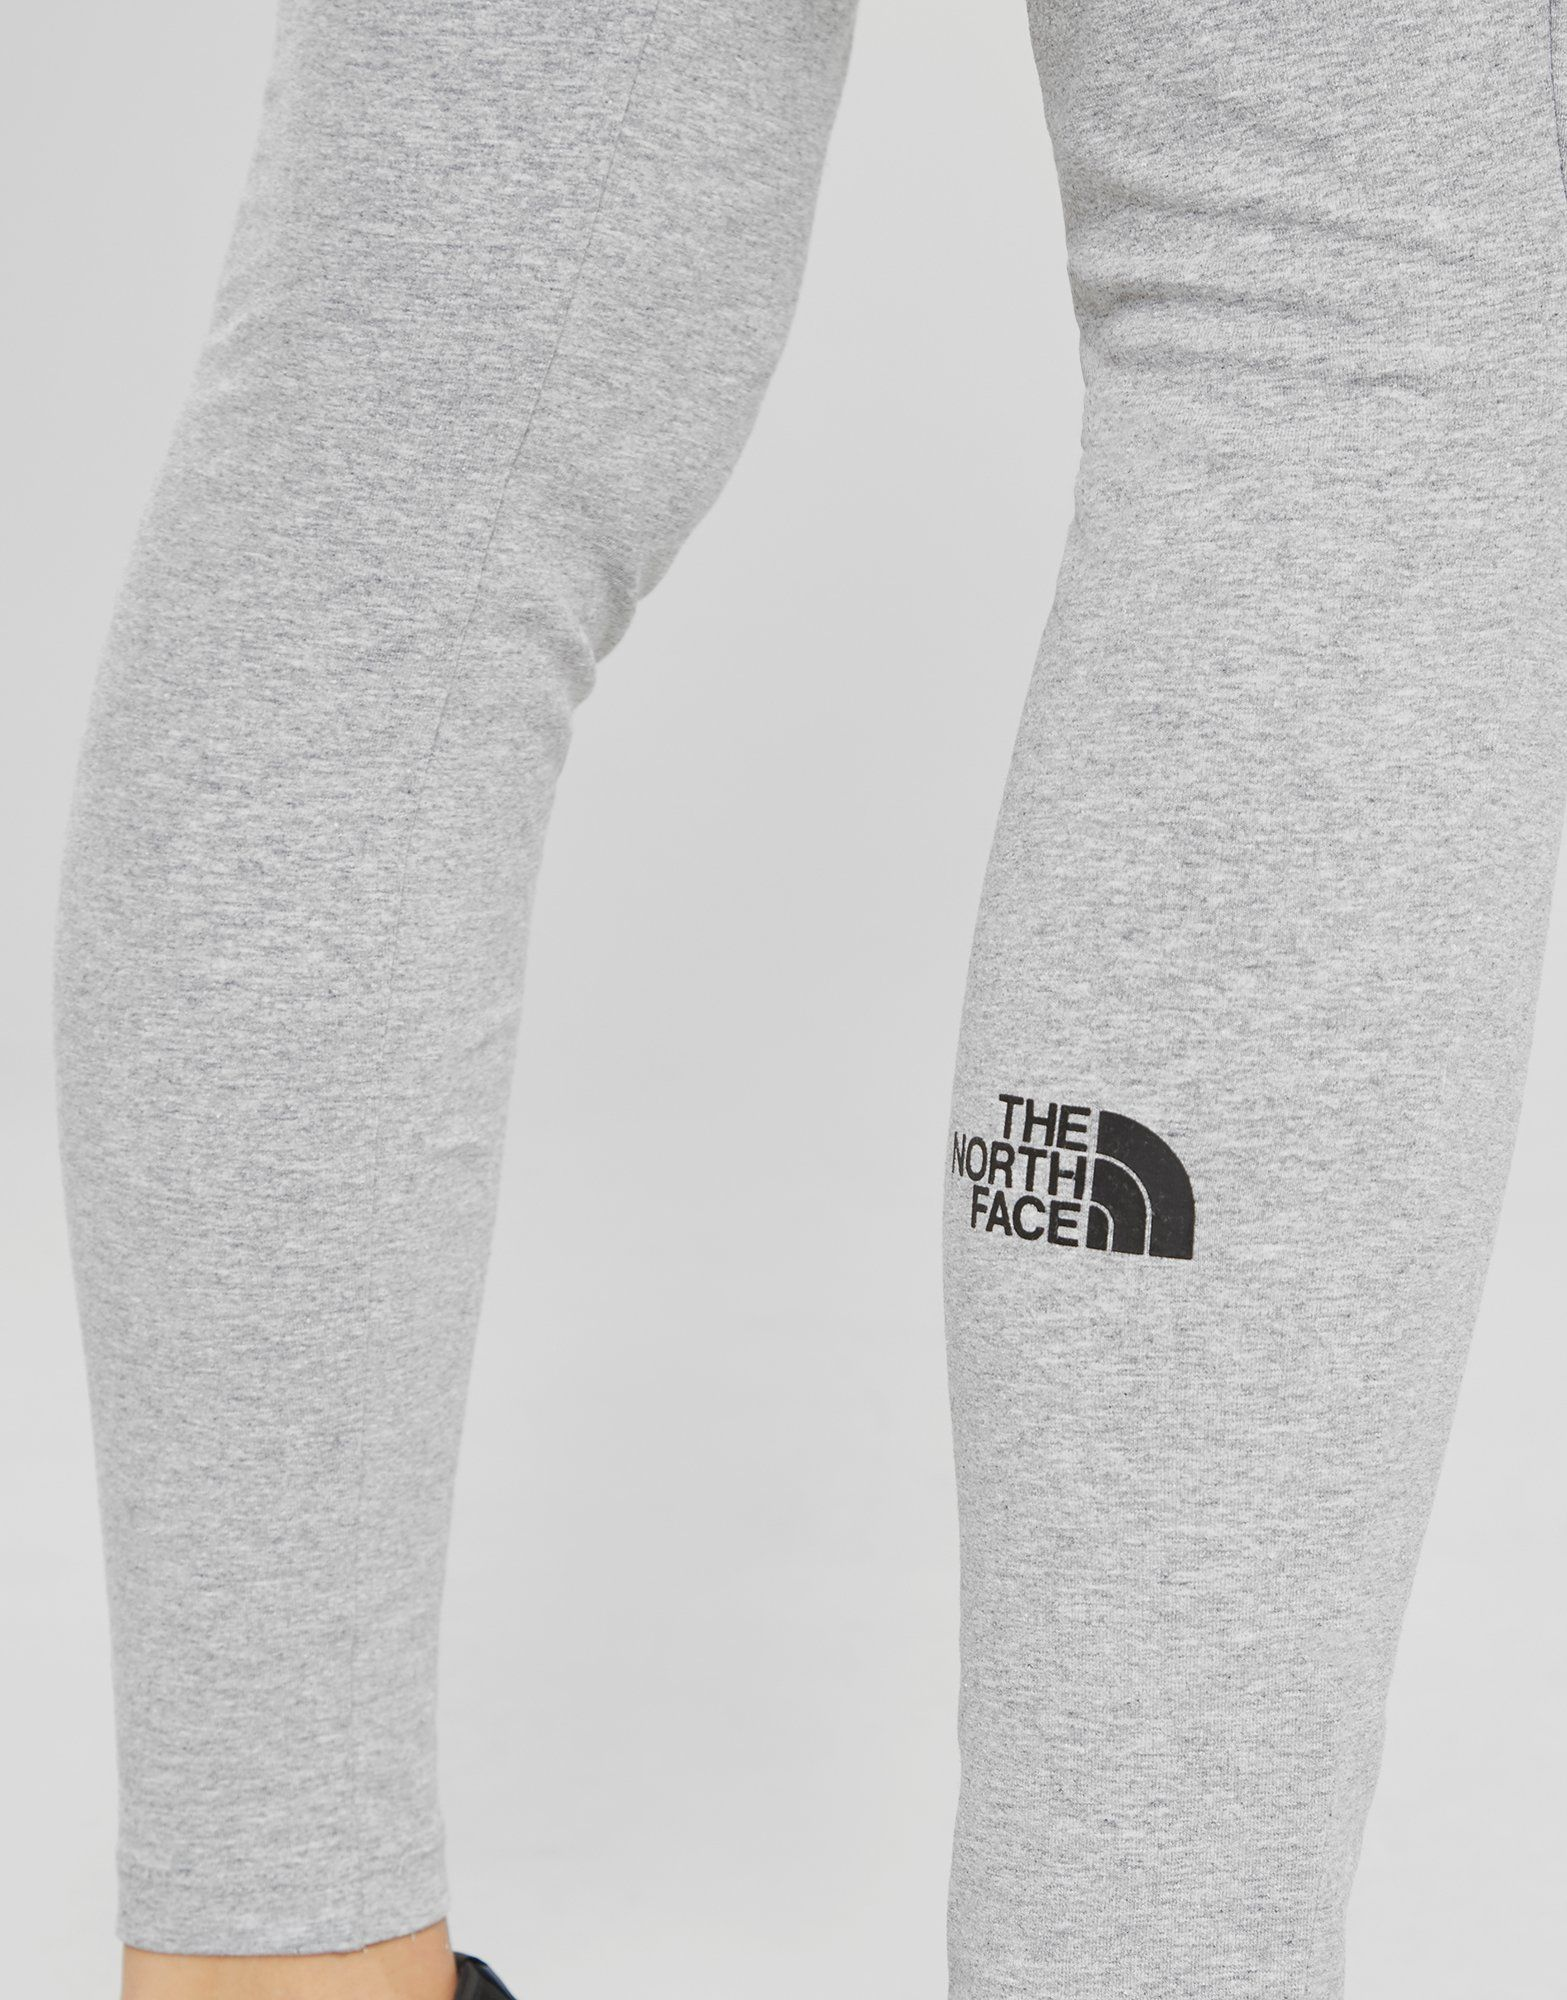 The North Face Leggings Donna